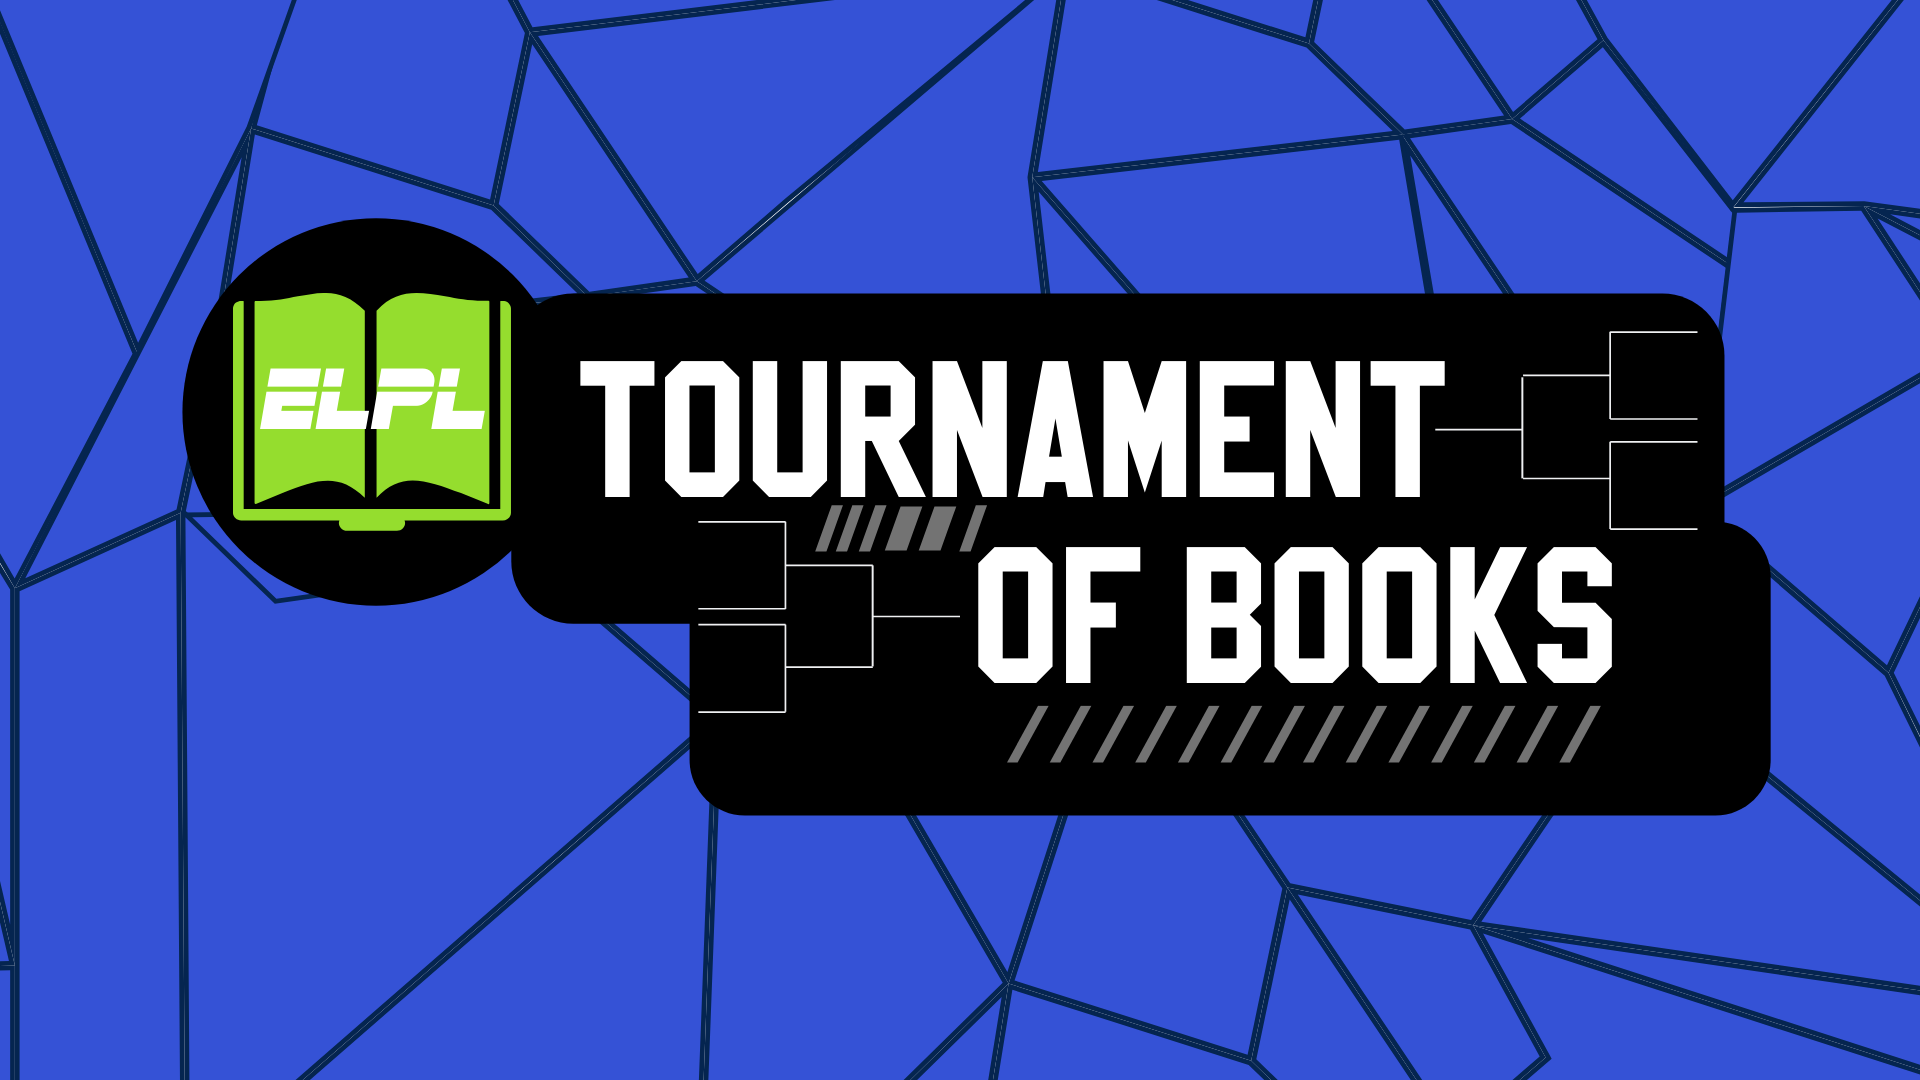 ELPL Tournament of Books